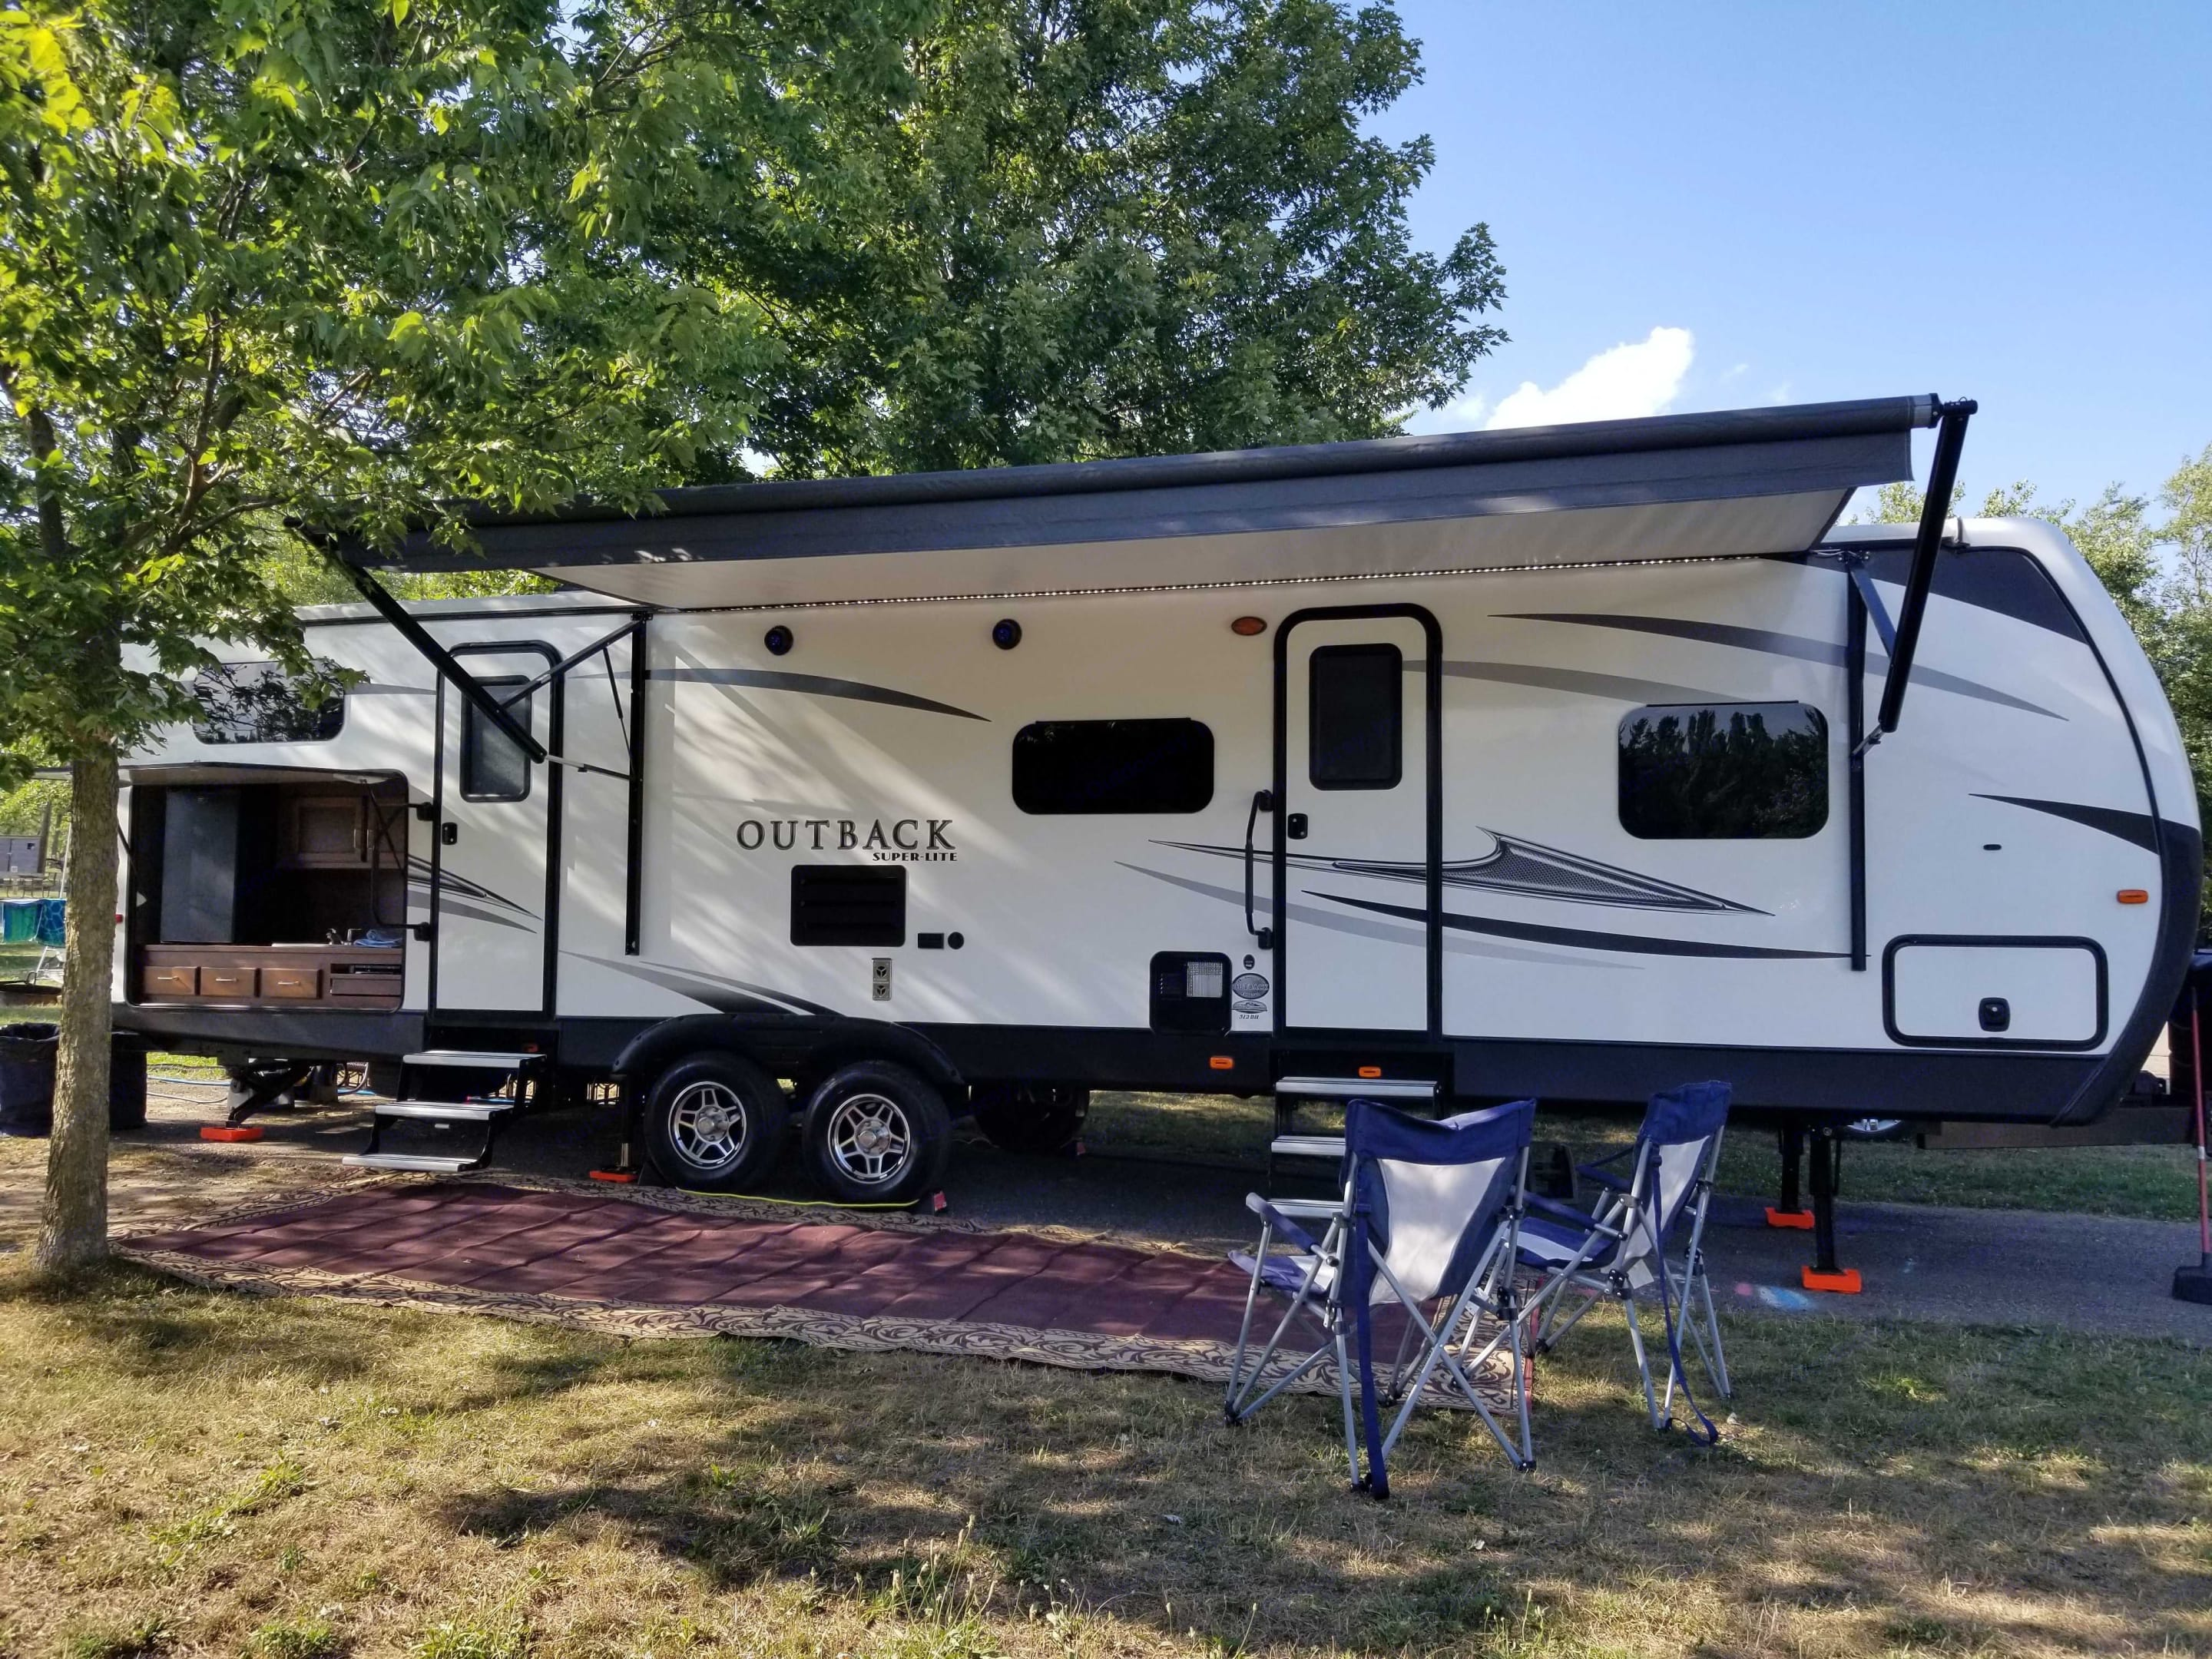 Full set up... including 18ft awning, outdoor rug, 2 trash cans & chairs... the super convenient out door kitchen with fridge, sink & 2 burner stove . Keystone Outback 2017